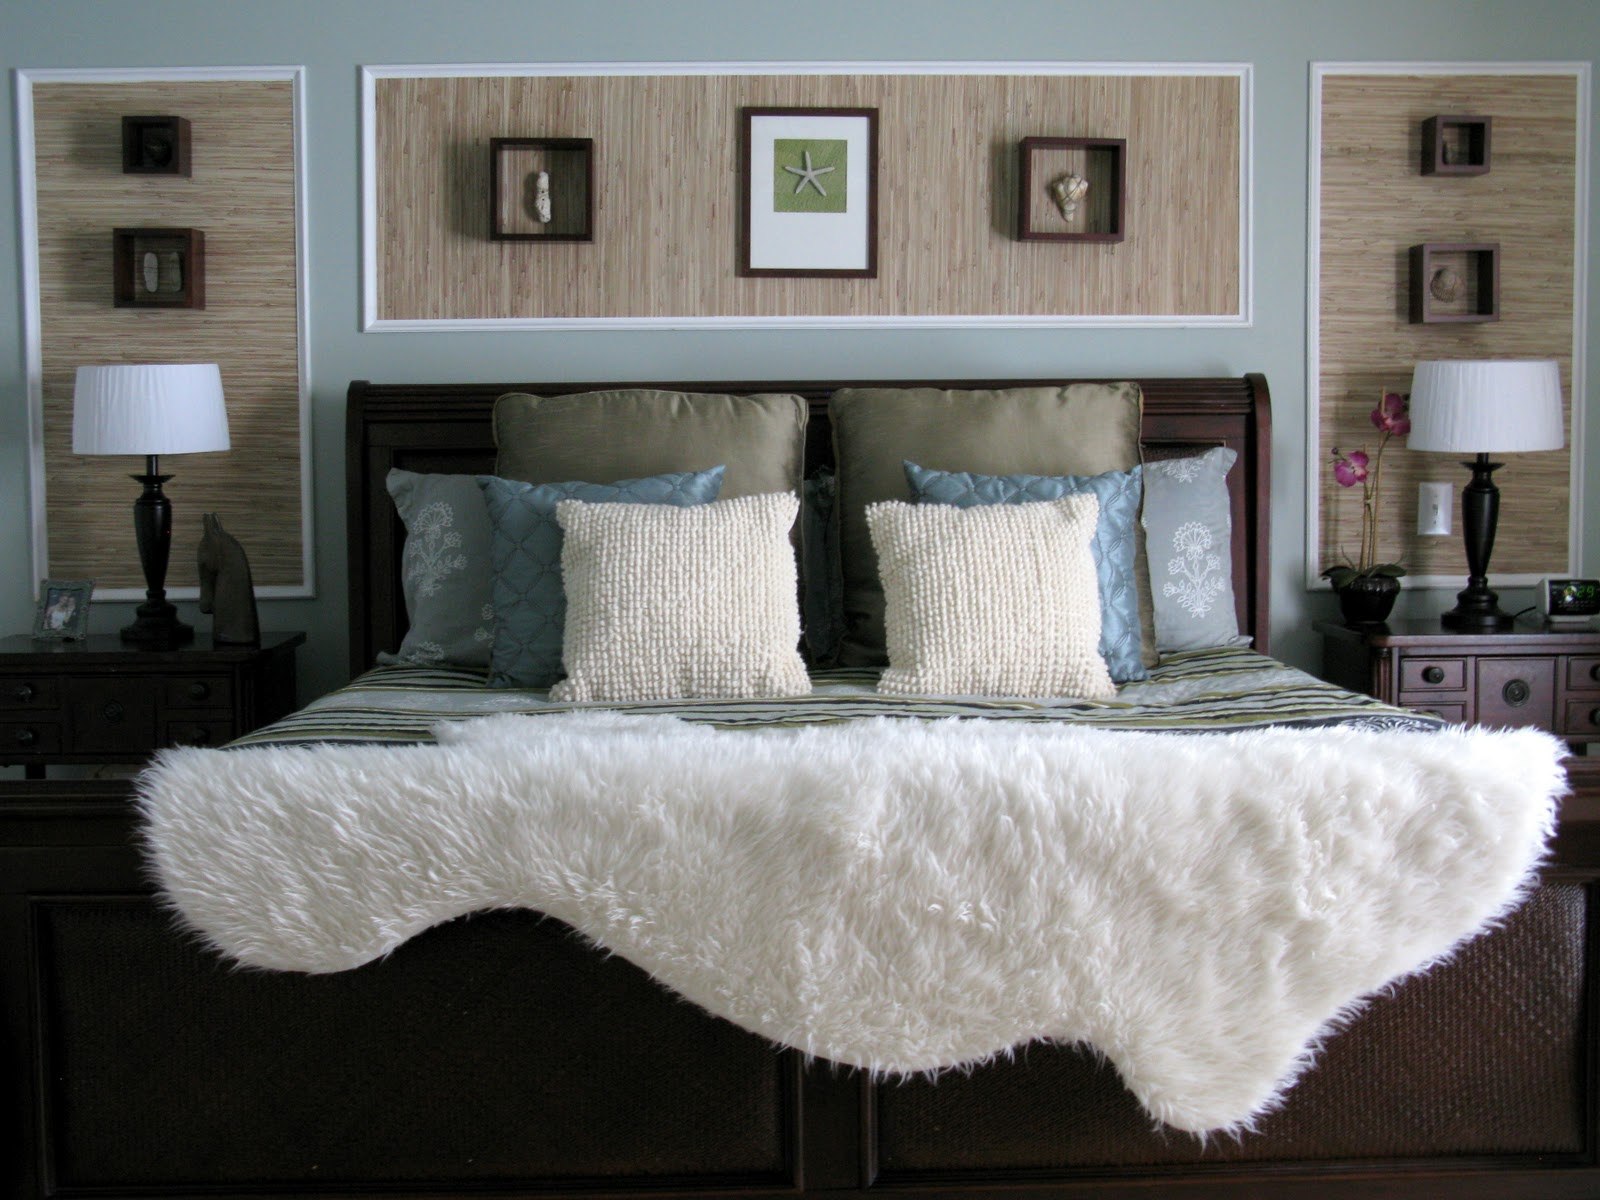 Loveyourroom voted one of the top bedrooms by houzz for Bedroom ideas hanging pictures